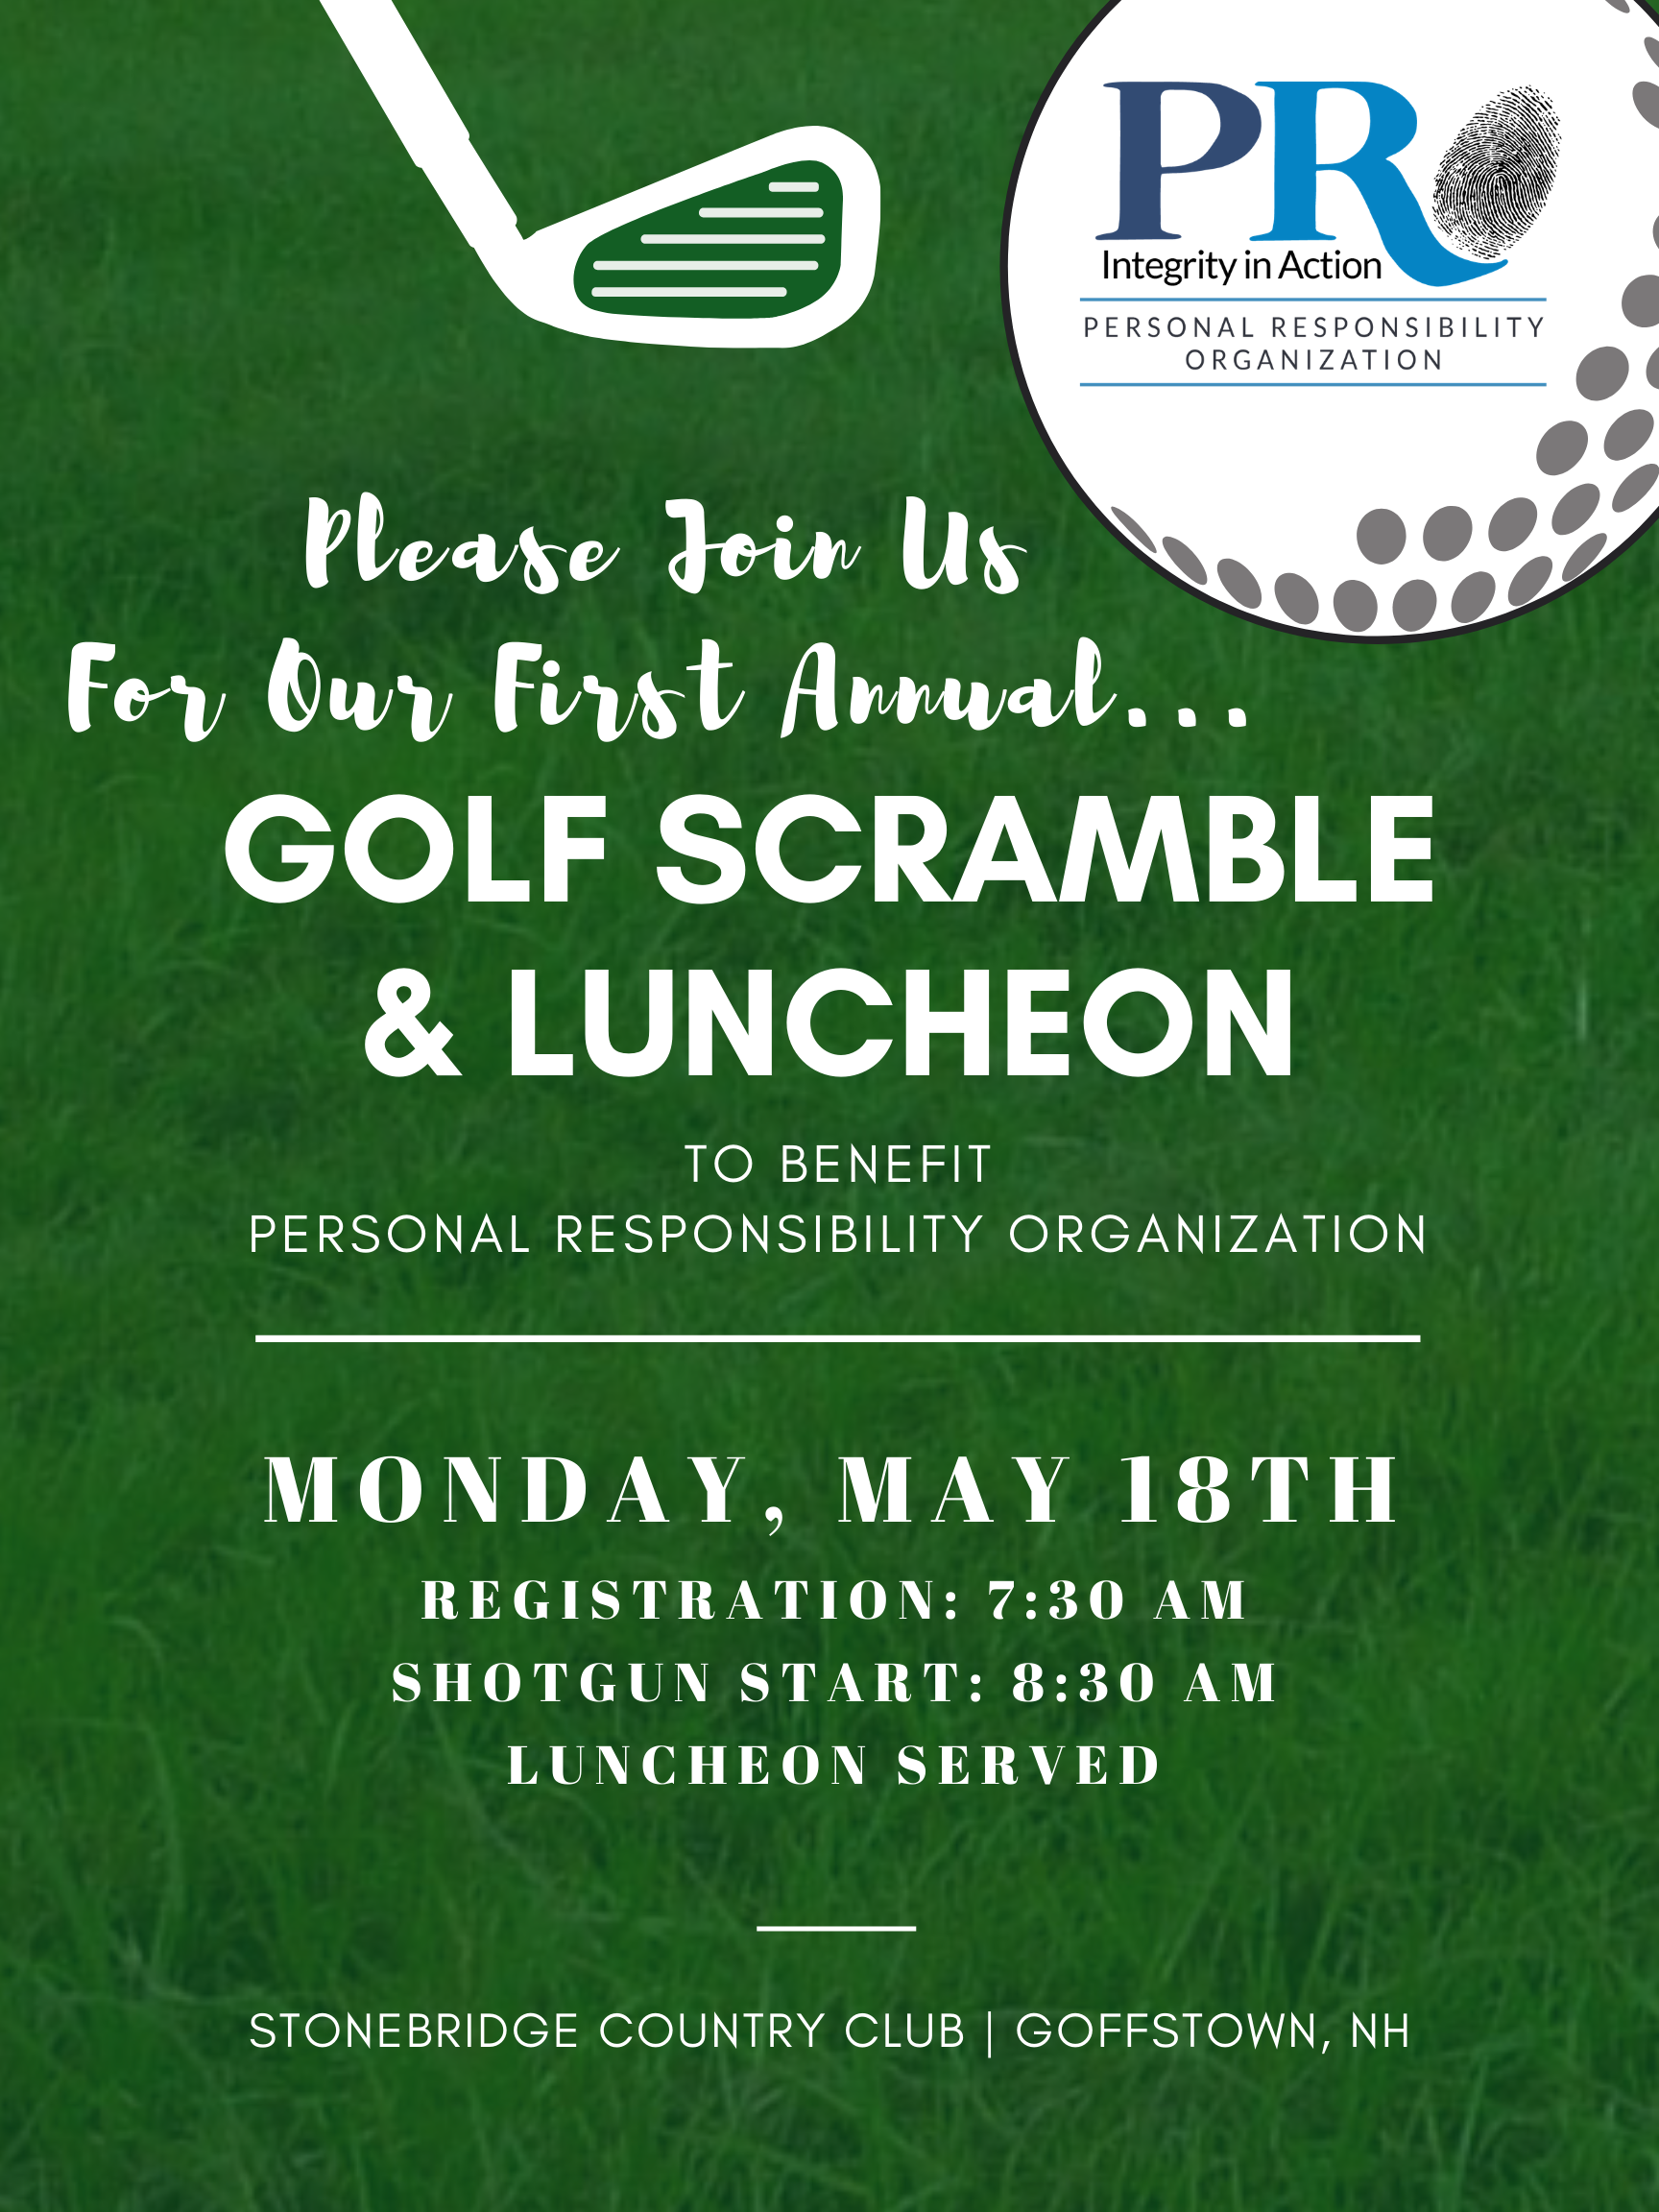 Charity Golf Scramble & Luncheon benefiting PRO image